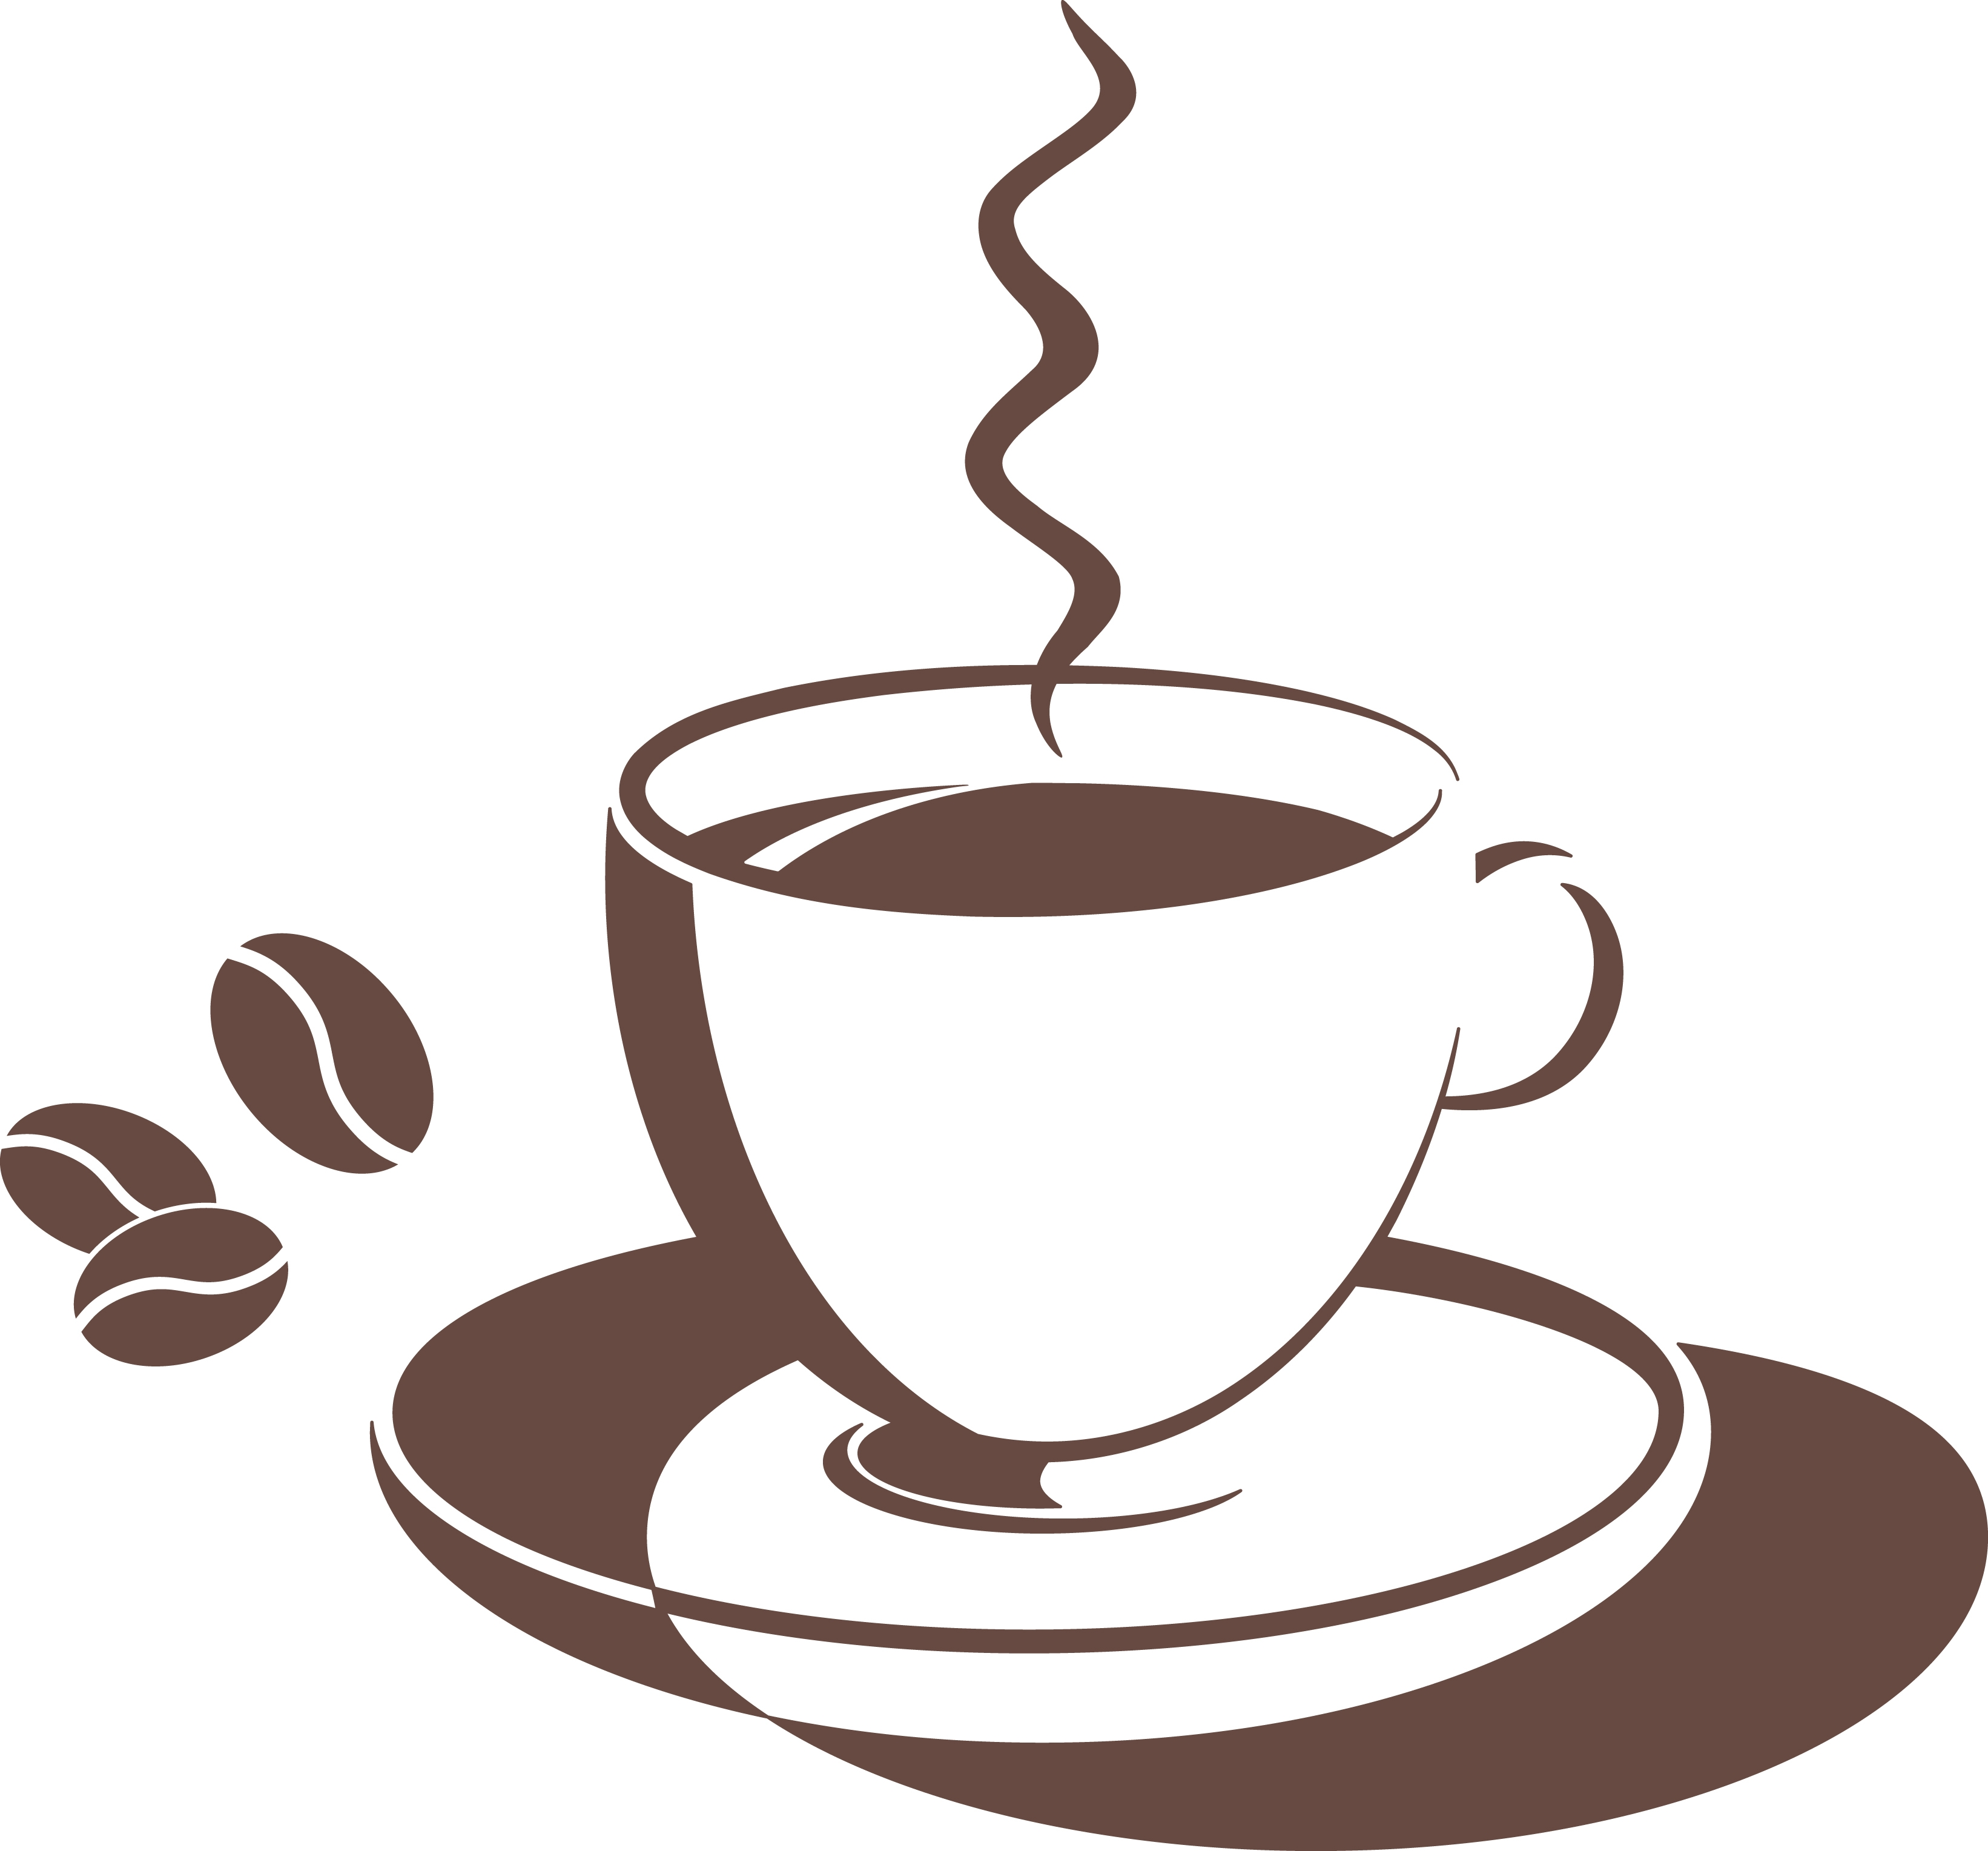 Coffee clipart coffee morning Coffee Fragrant Cup Morning Morning